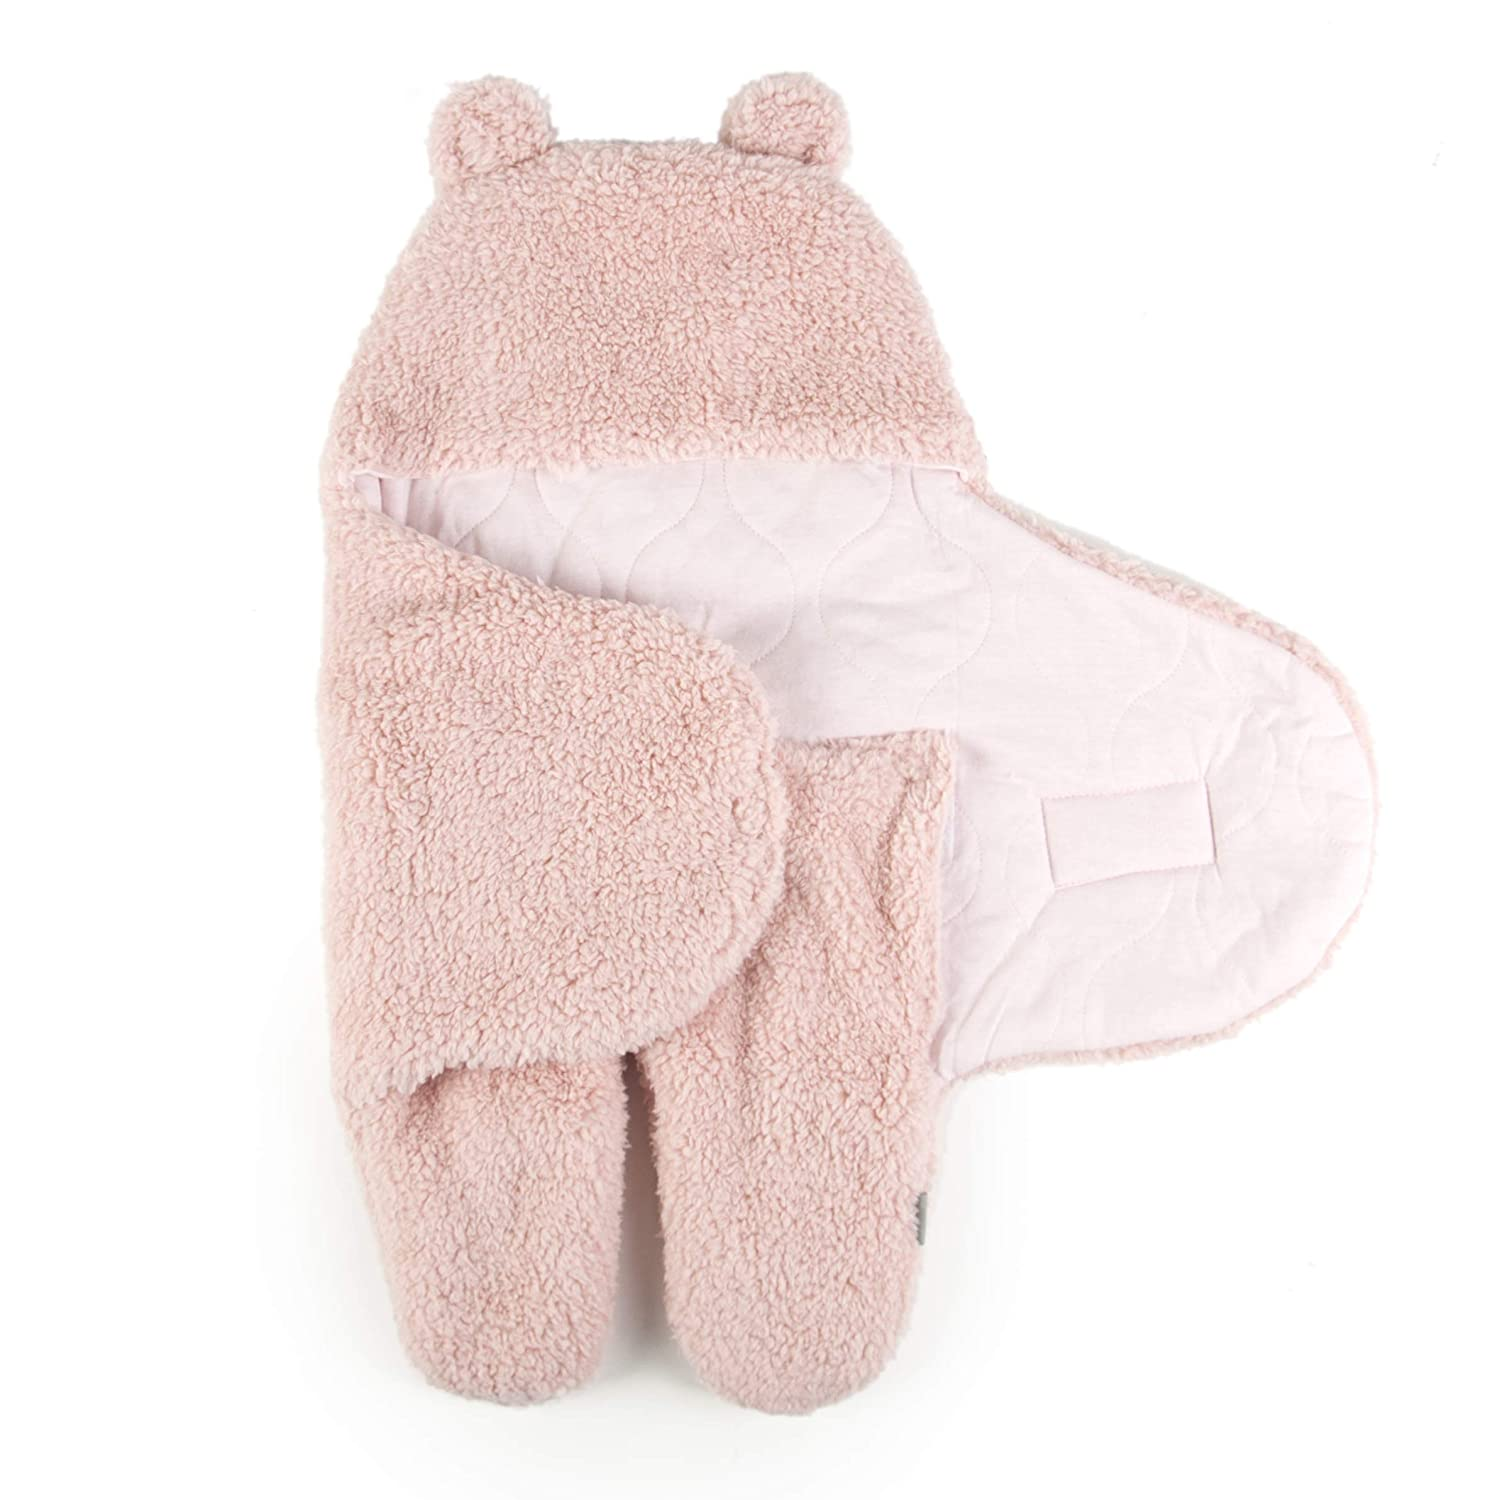 Tadpoles Super Soft Plush Sherpa Swaddle Wrap, Blush